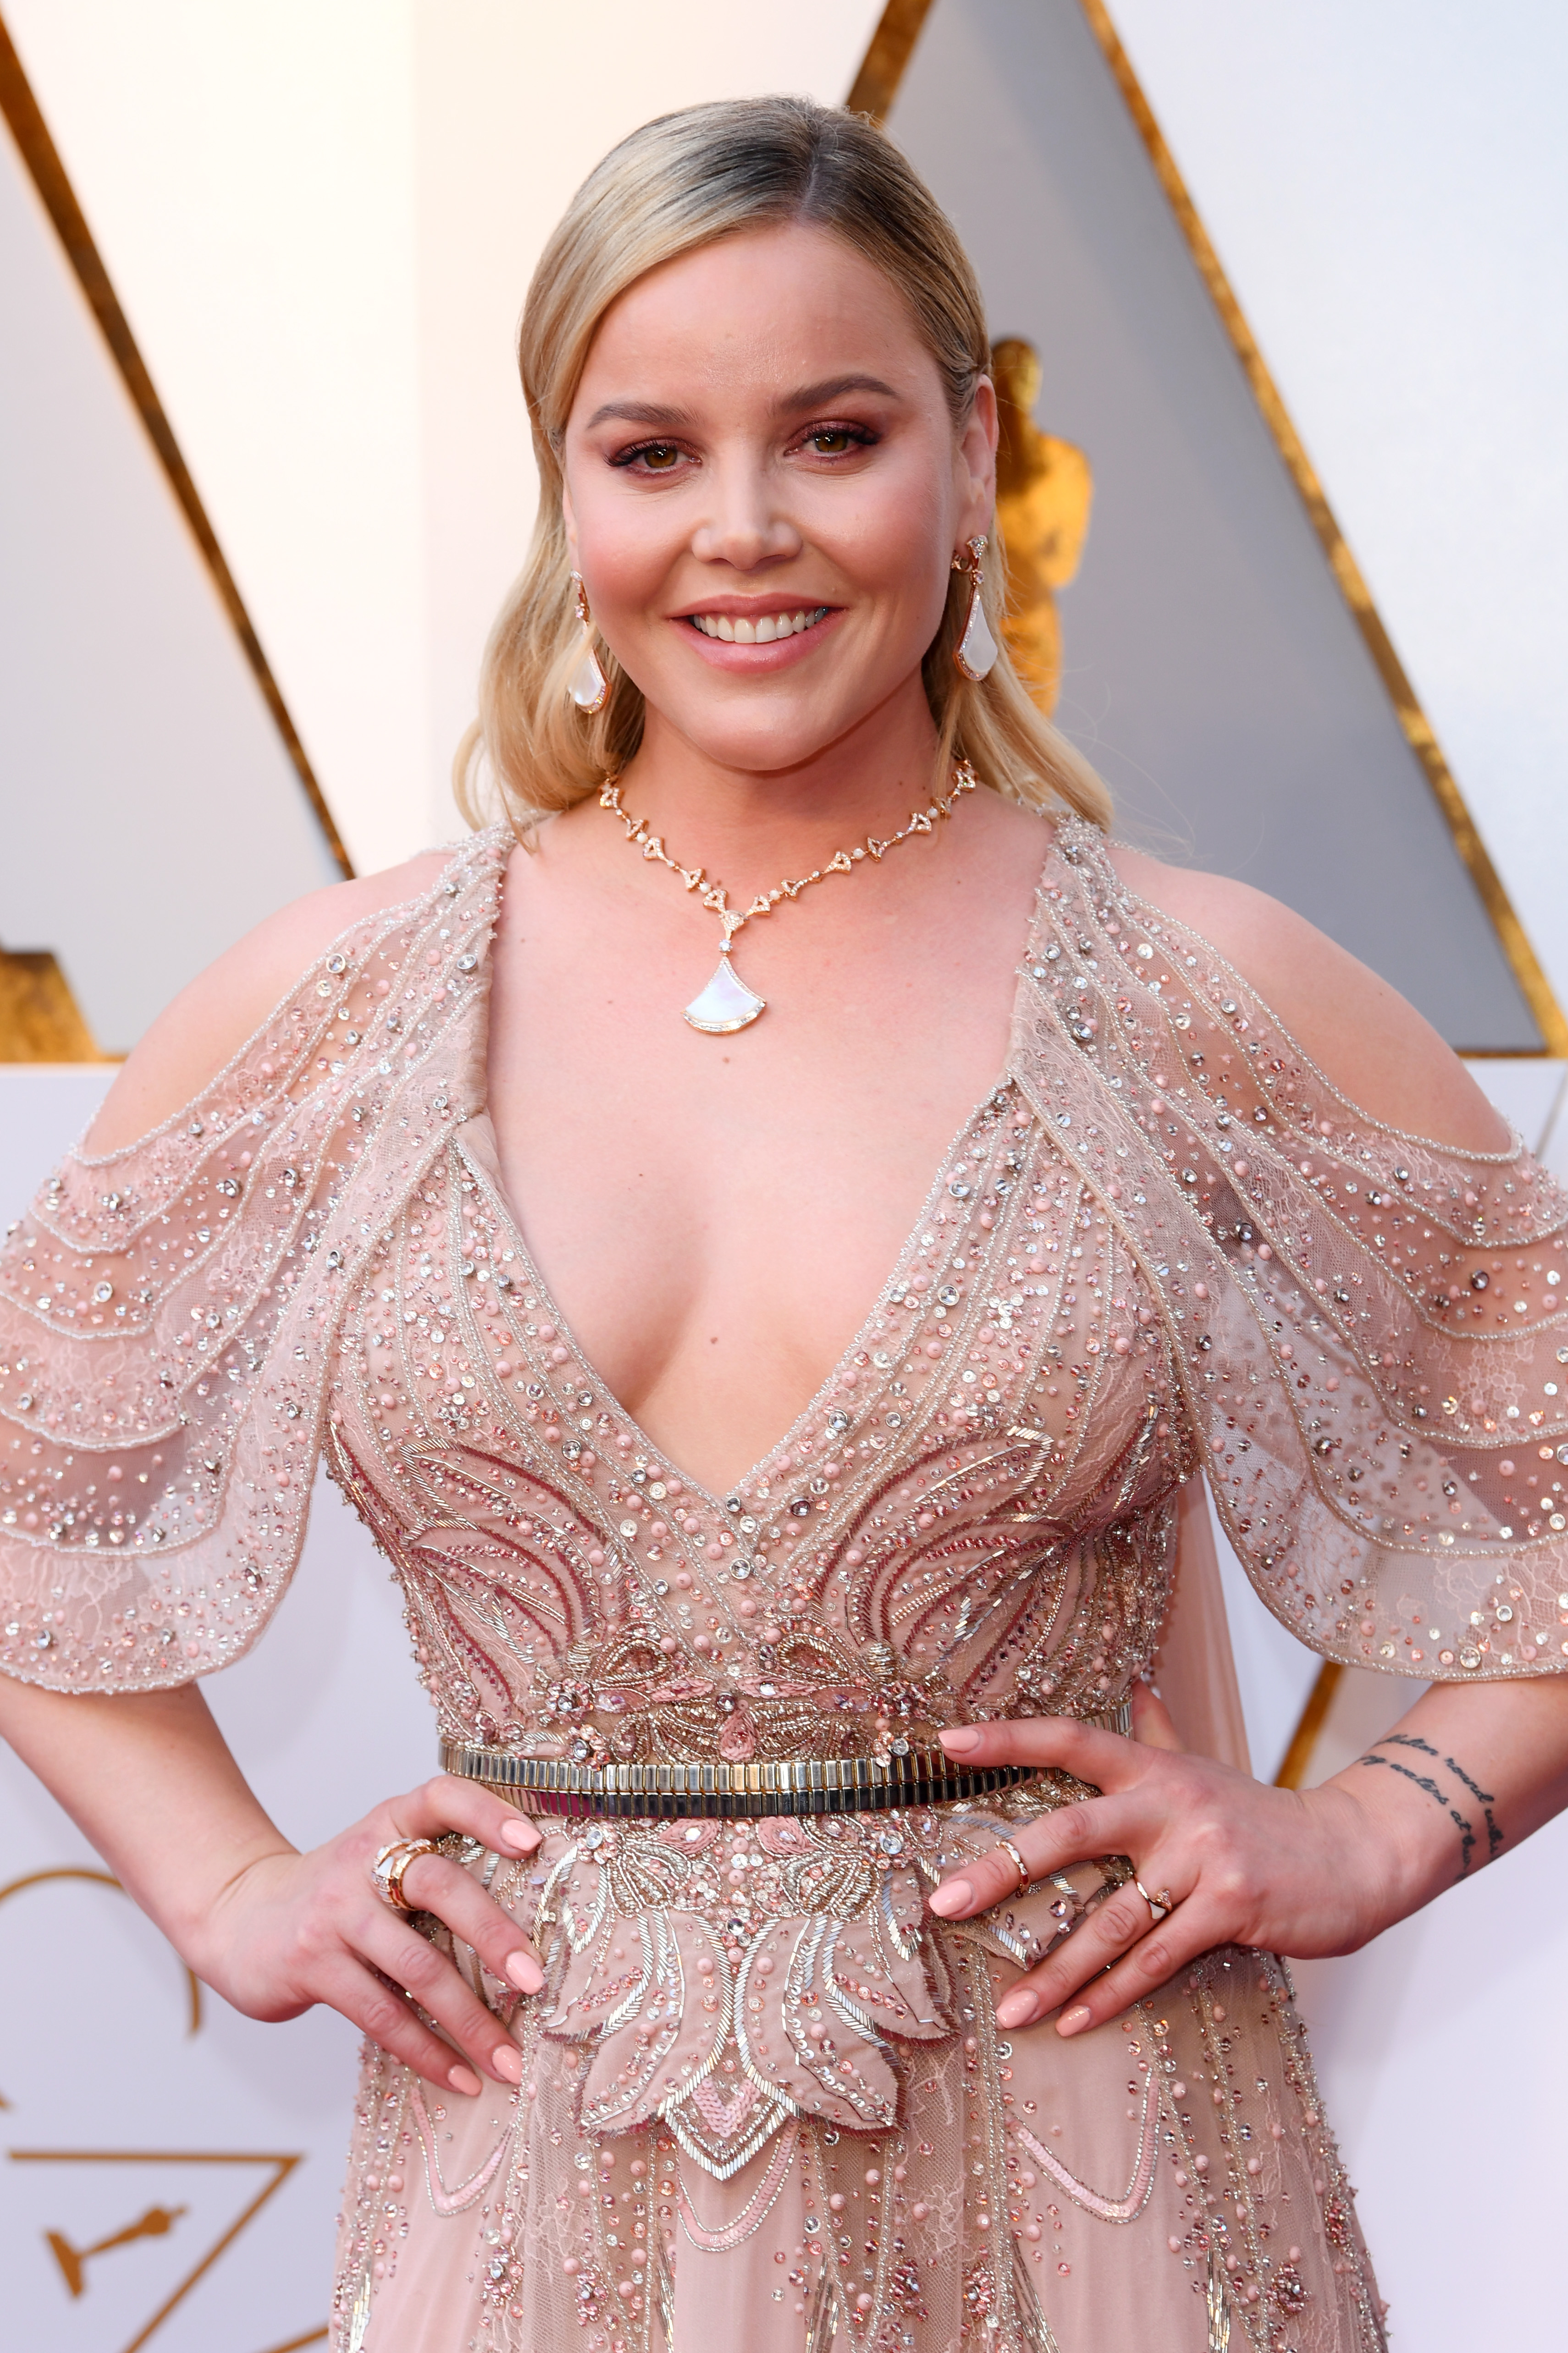 0110160225686_136_Abbie_Cornish___1_.jpg